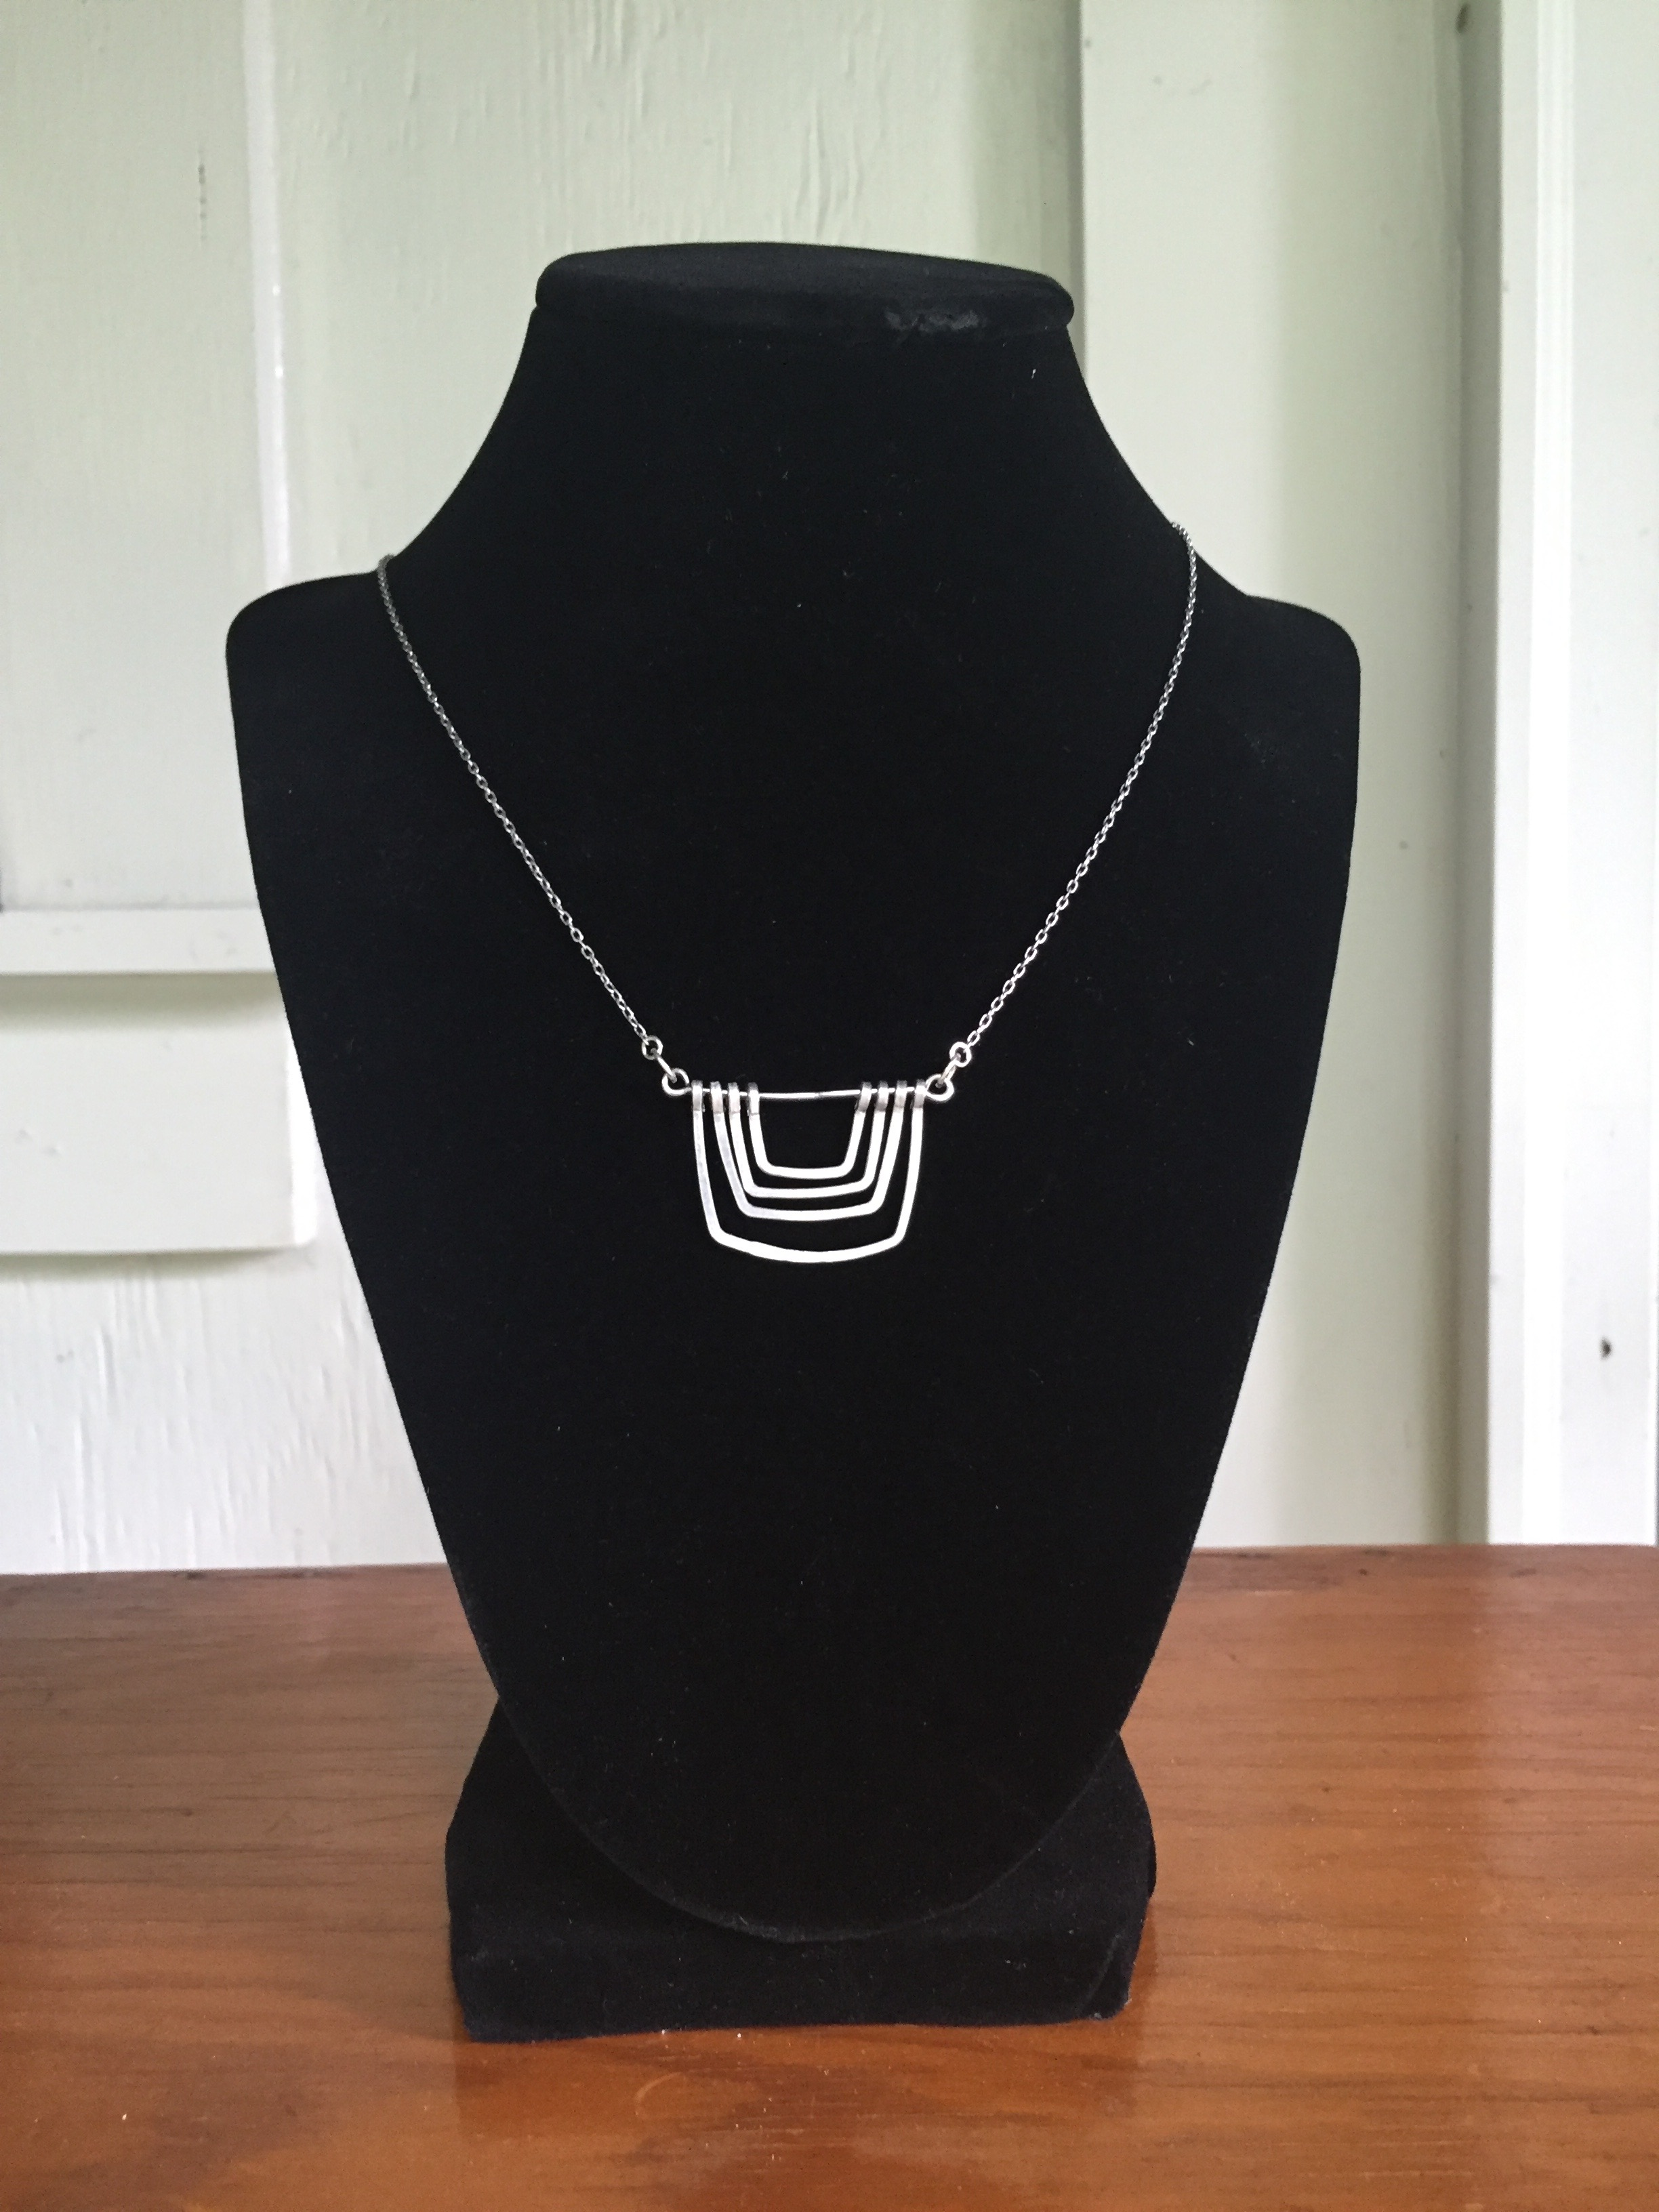 Four Square Aluminum Necklace - $30